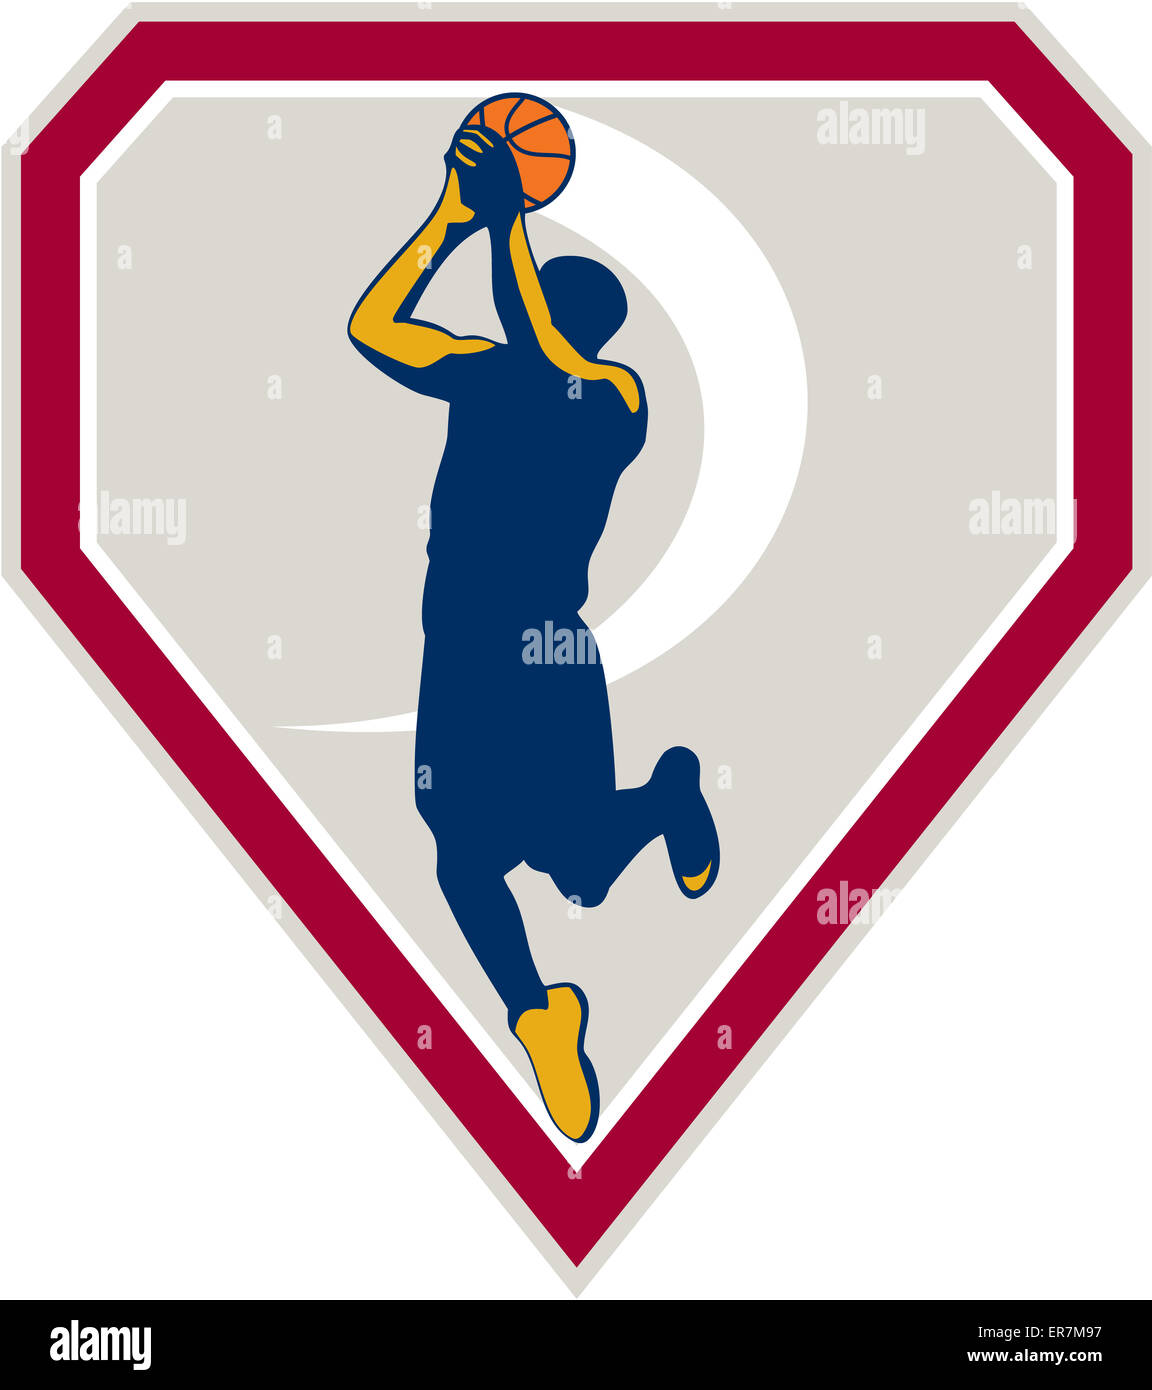 Illustration of a basketball player jump shot jumper shooting jumping set inside shield crest on isolated background - Stock Image